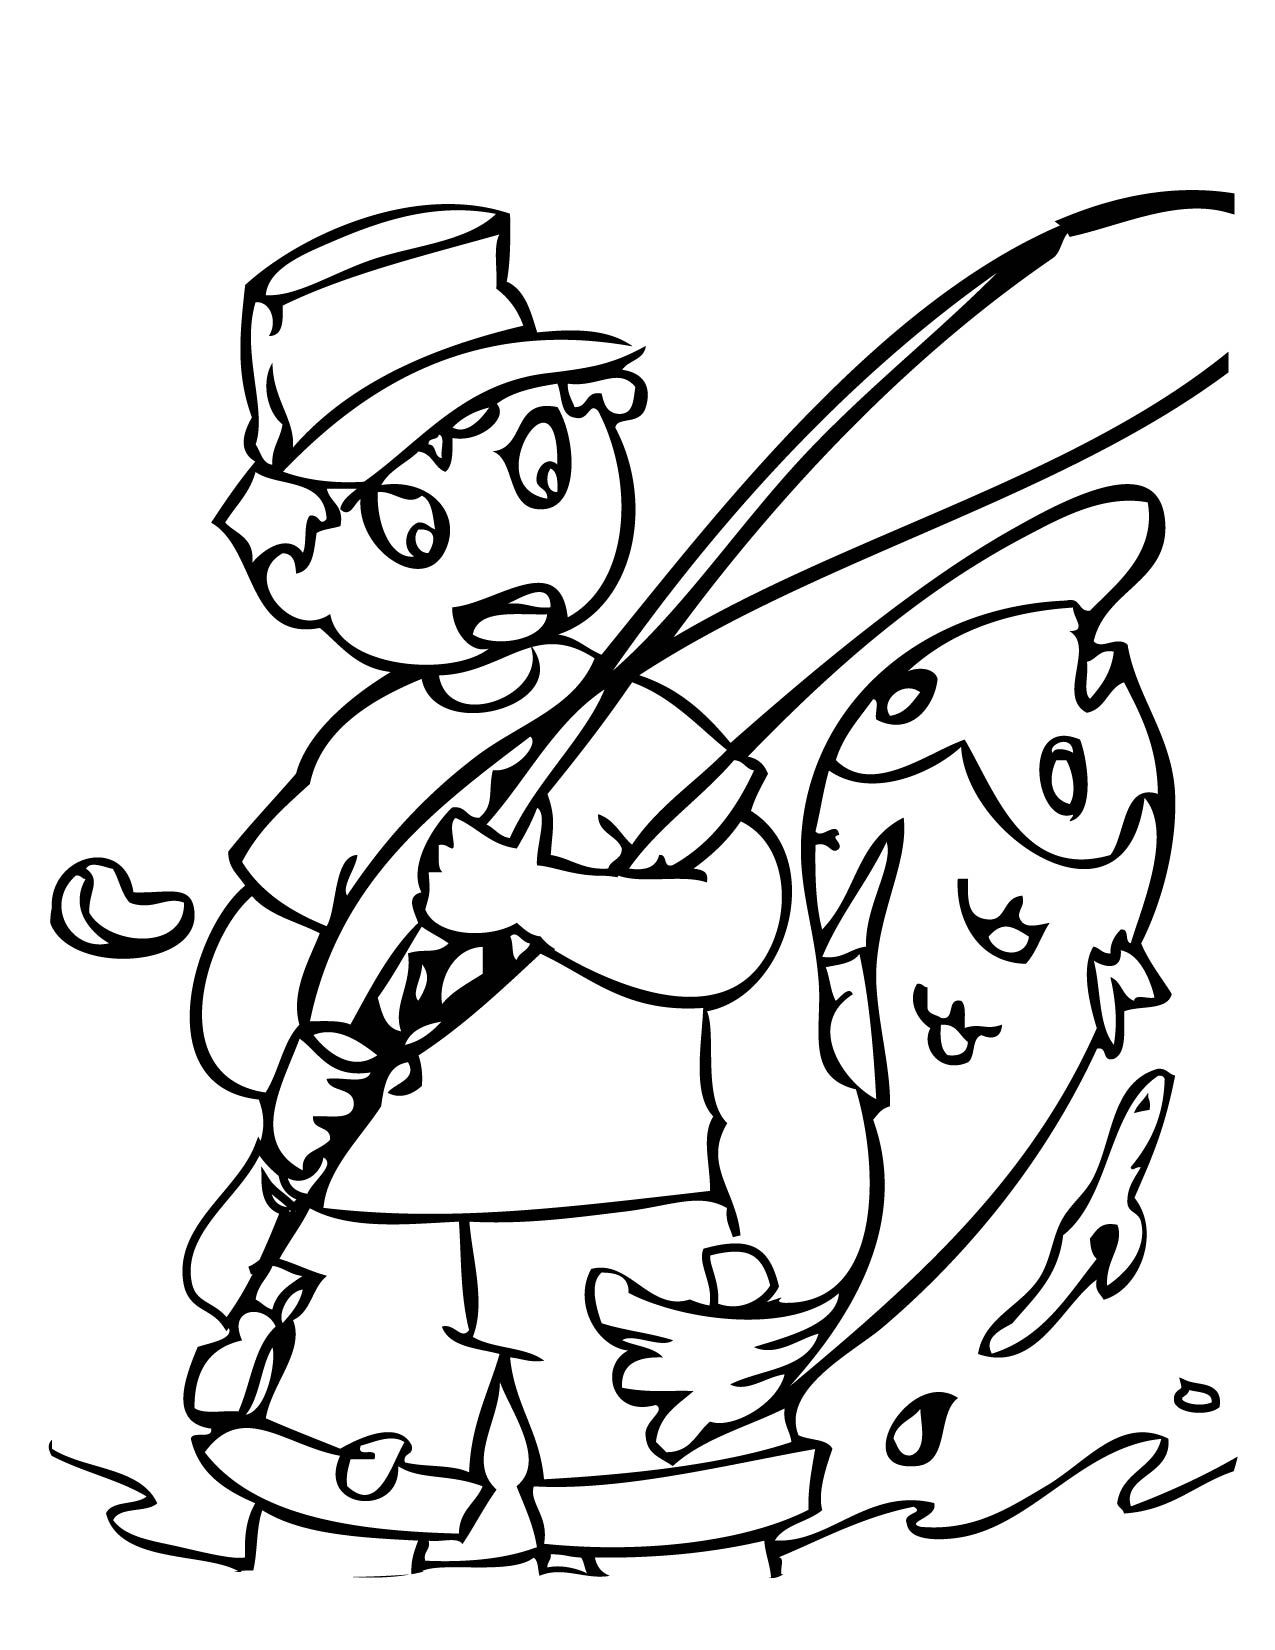 boy number 2 fishing - Fish Coloring Pages 2